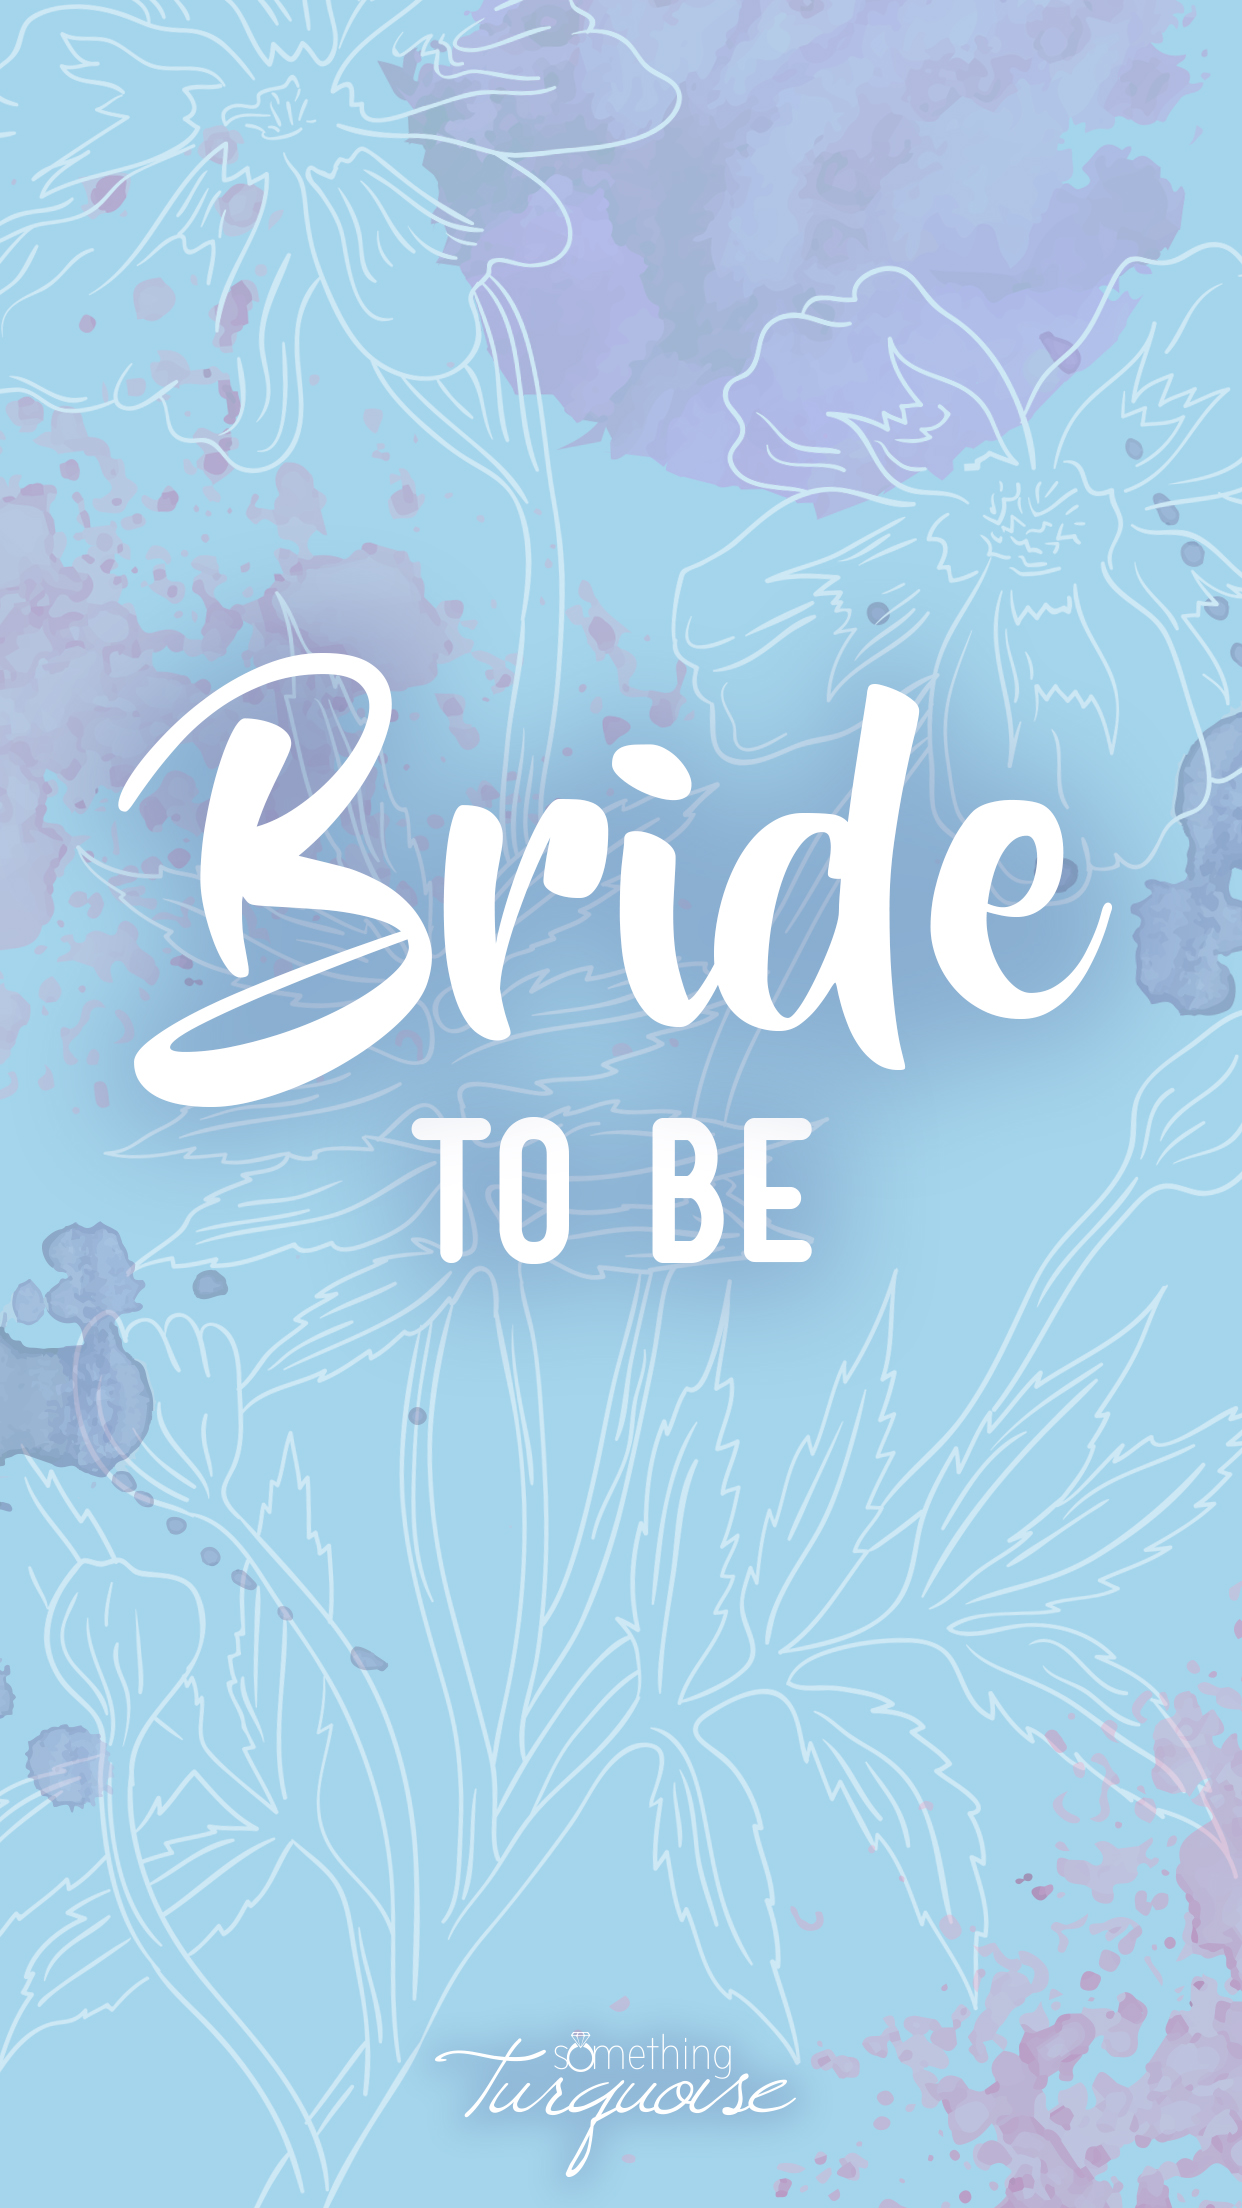 Awesome Bride To Be smartphone wallpaper and lock screen, SO cute!!